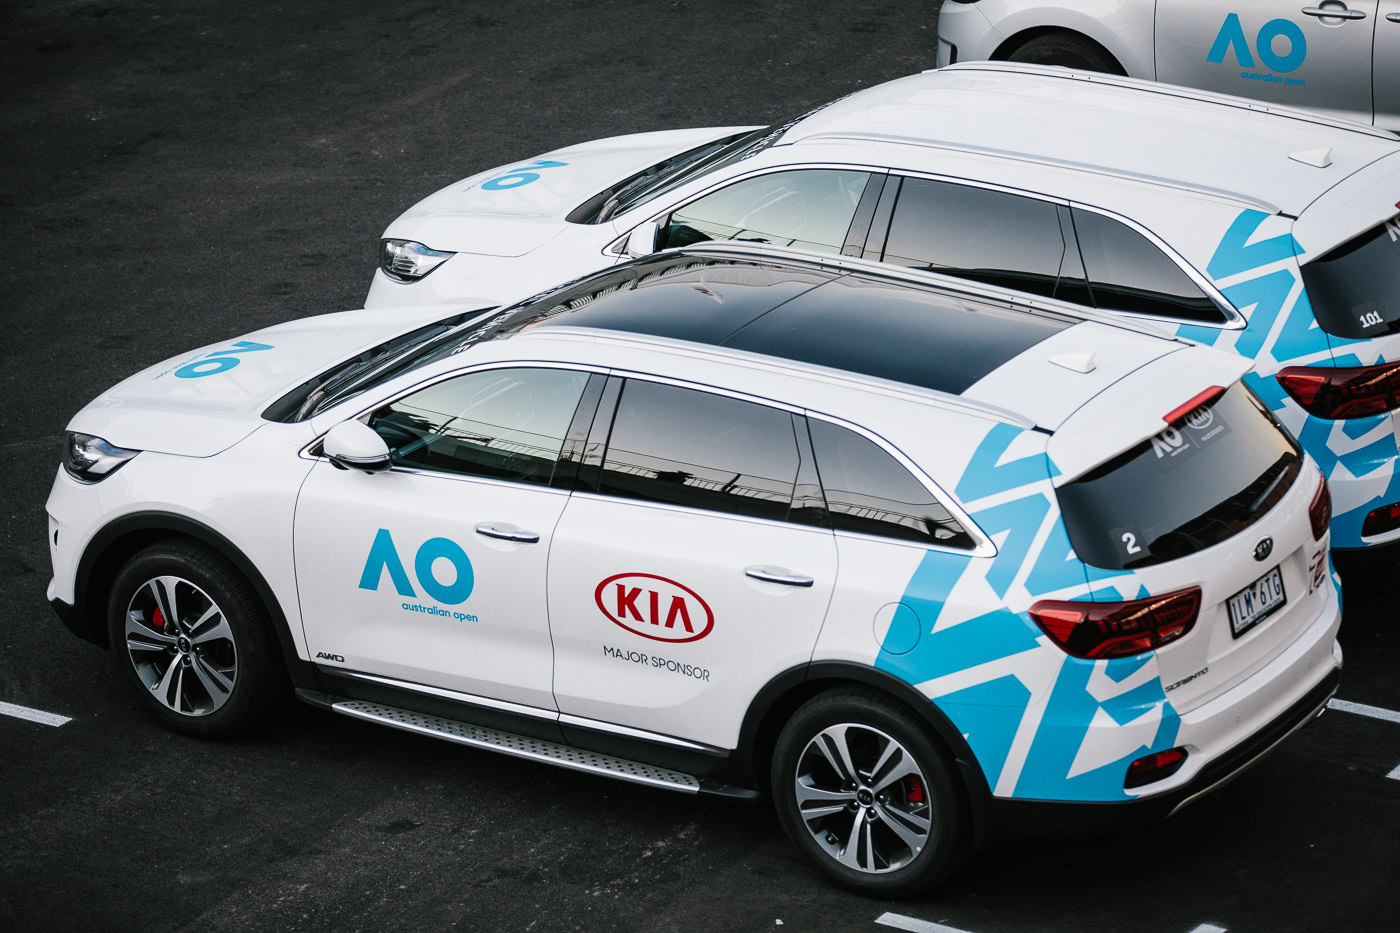 Australian Open Sposor Kia - PR Photos - Kia cars